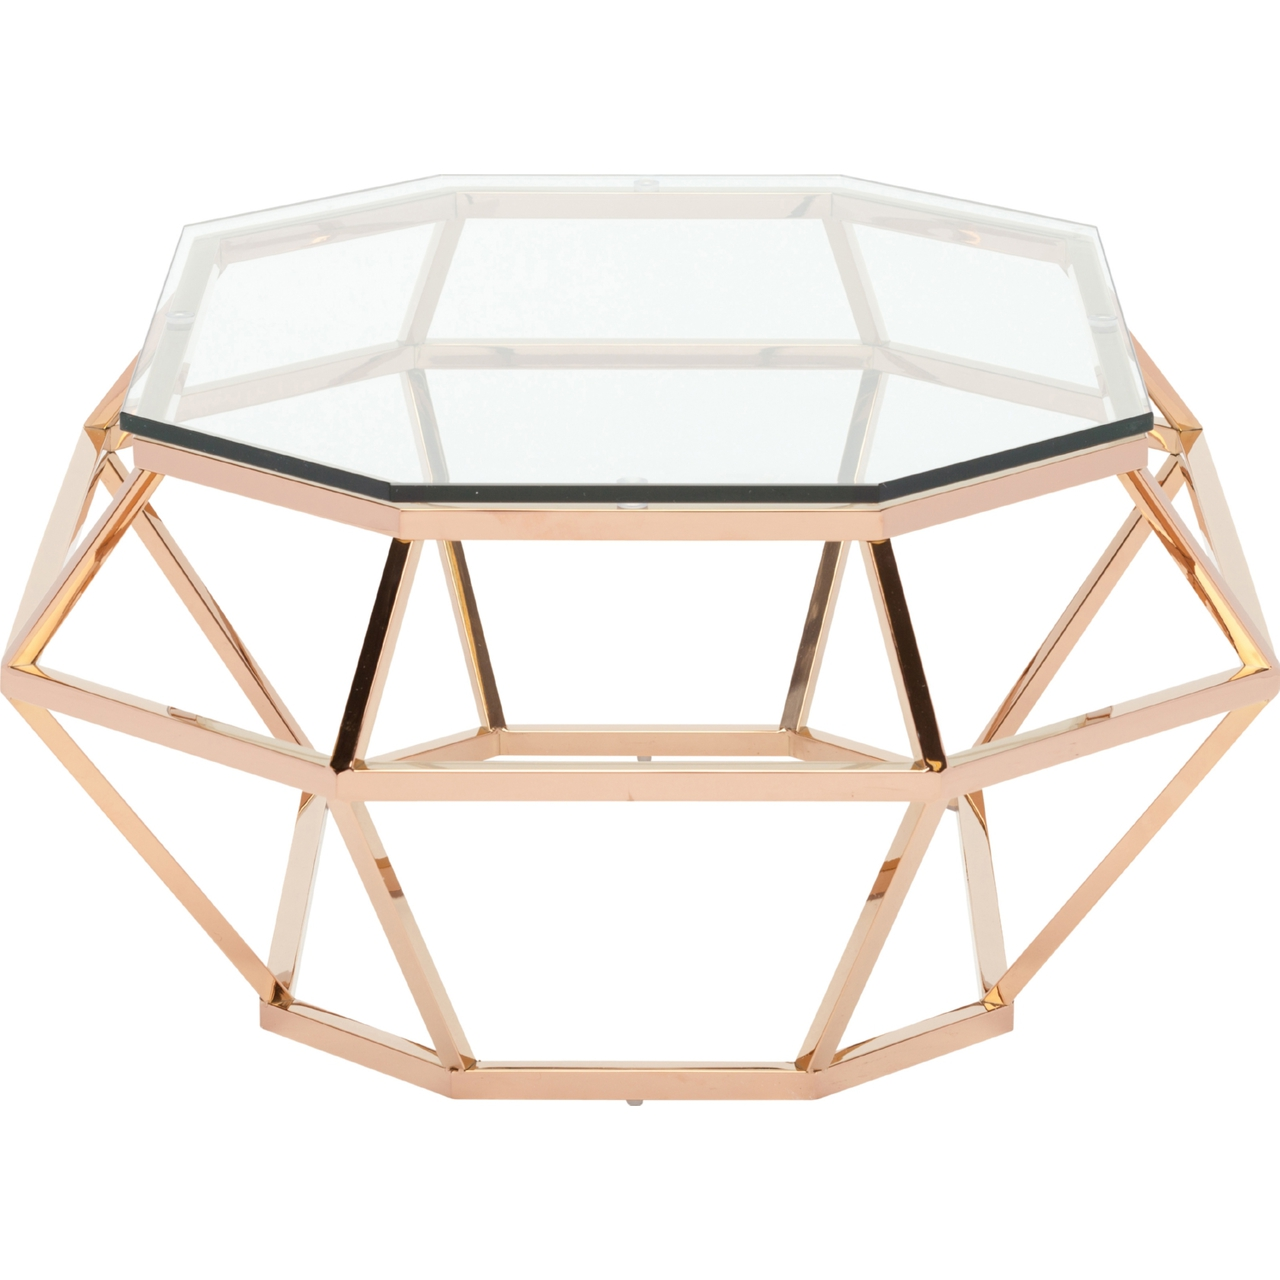 Rose Gold Glass Coffee Table